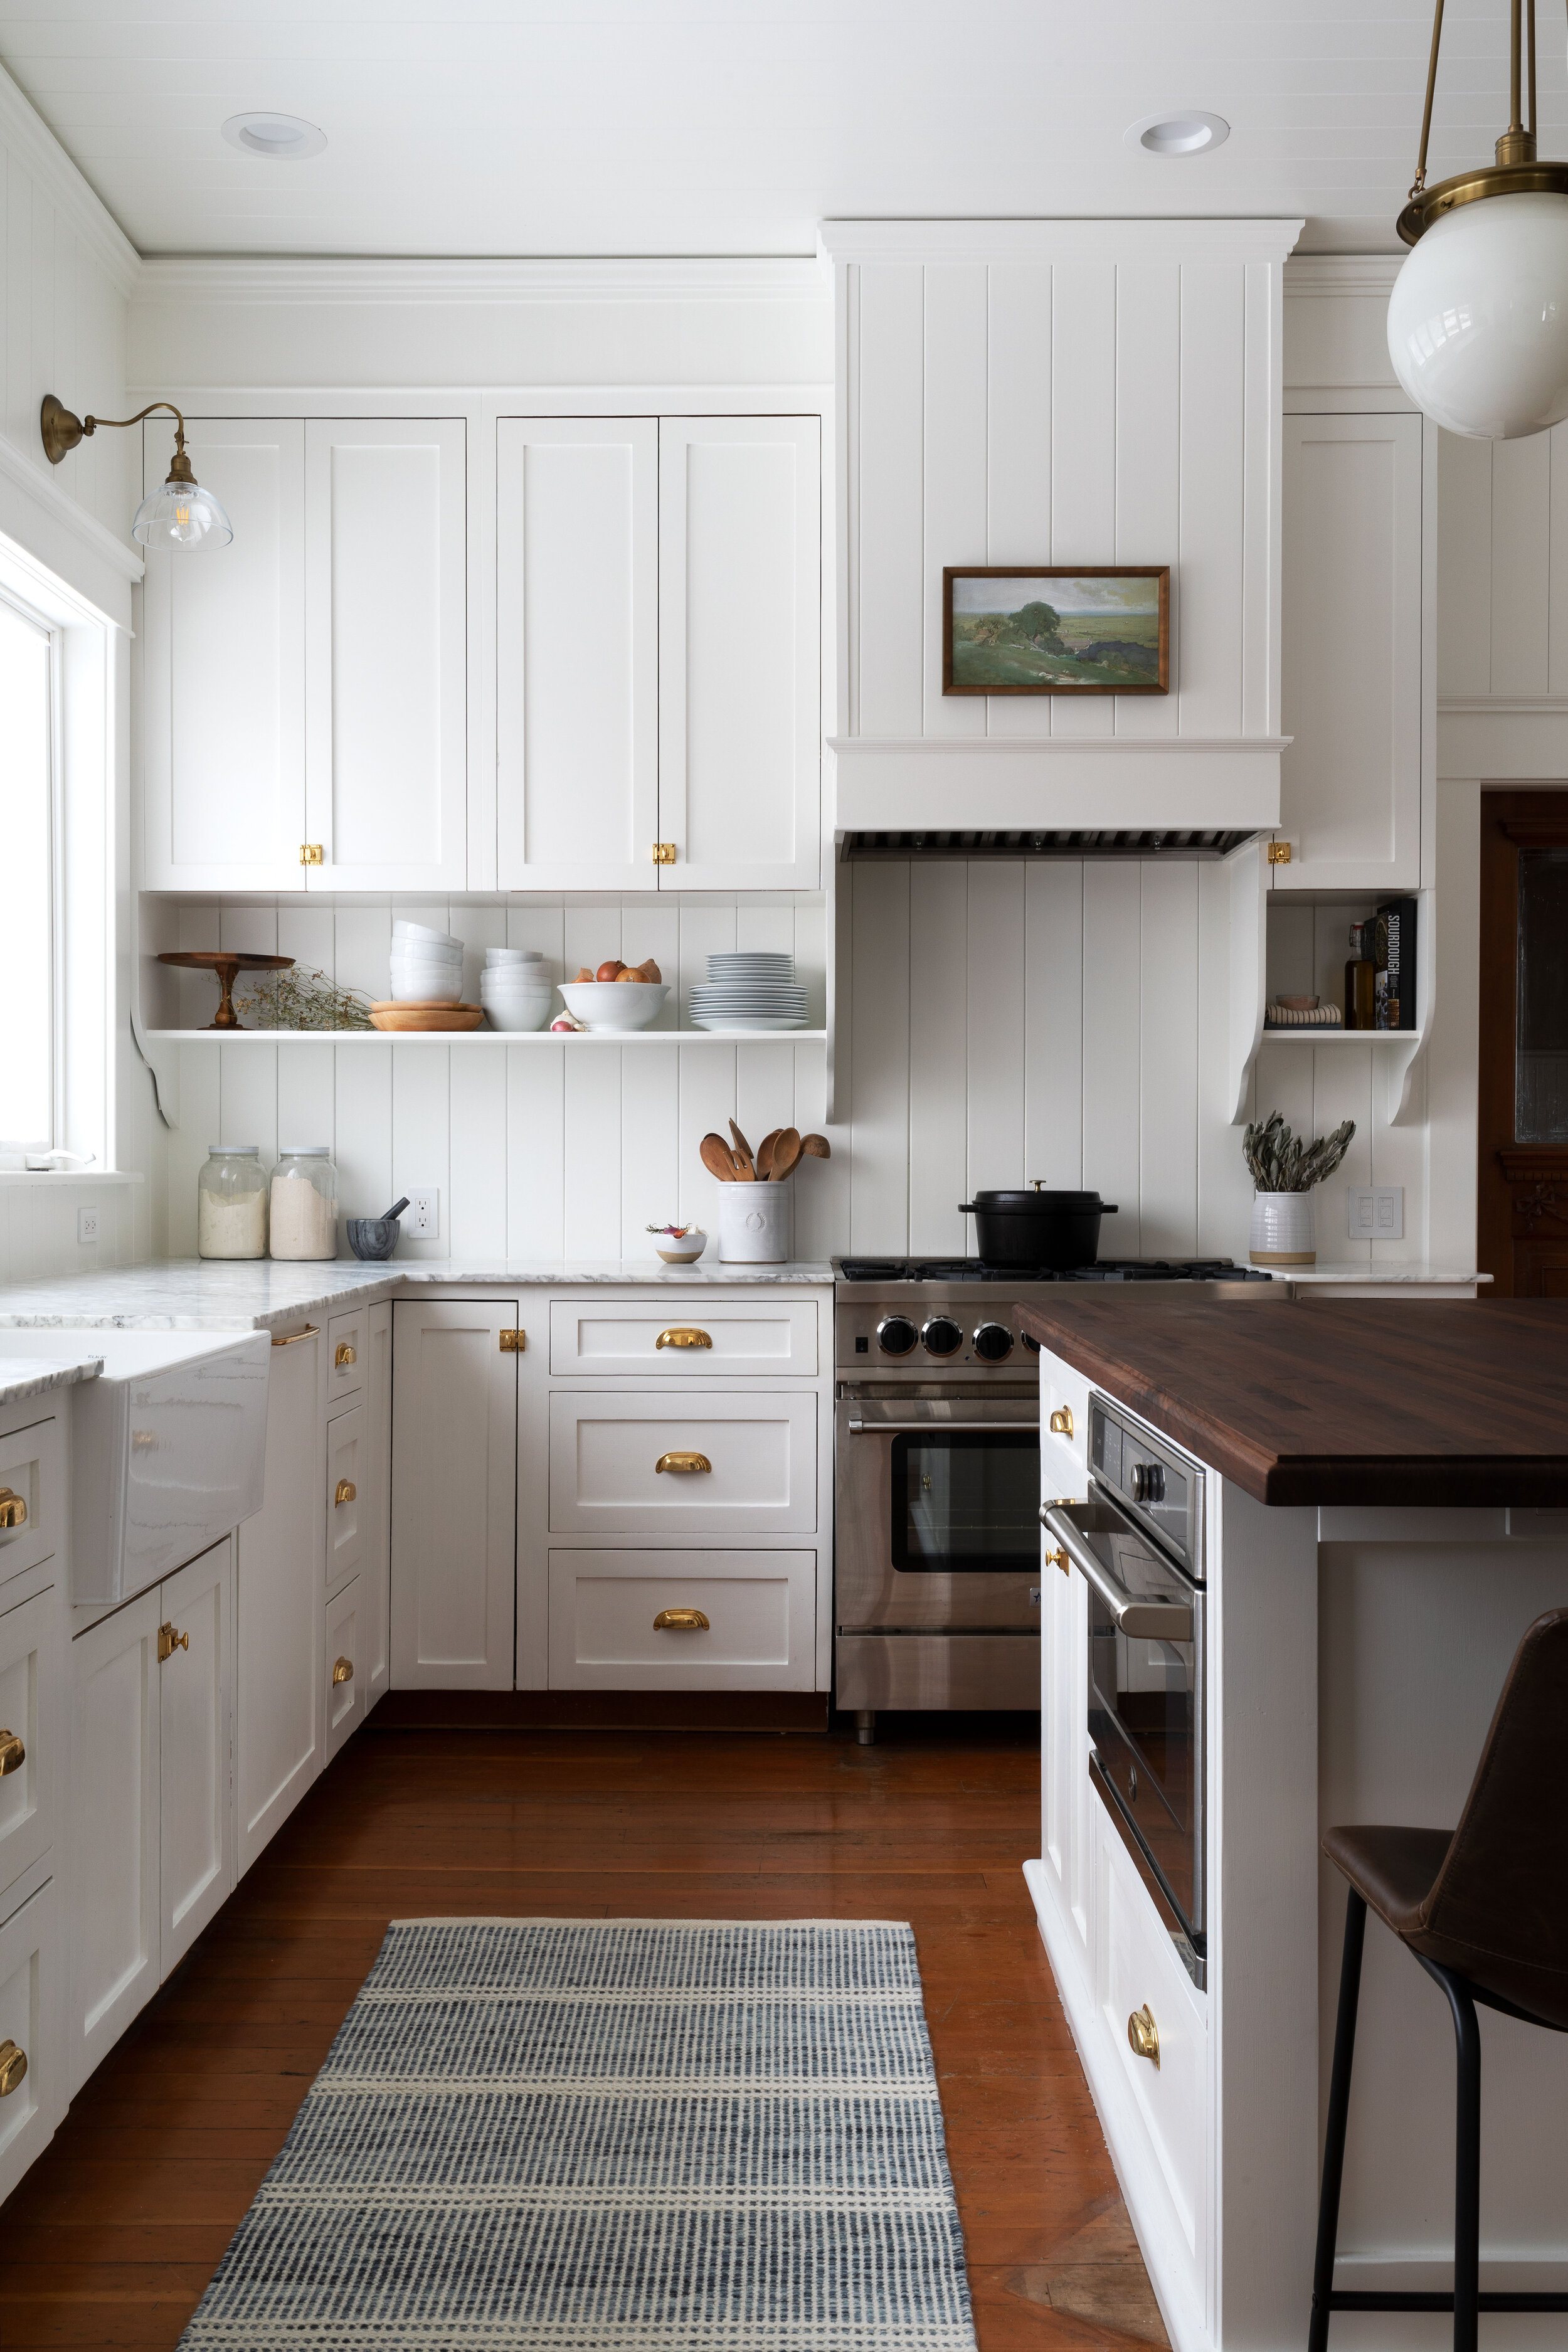 The Grit and Polish - Farmhouse Country Kitchen Reveal 3.0 9 web.jpg